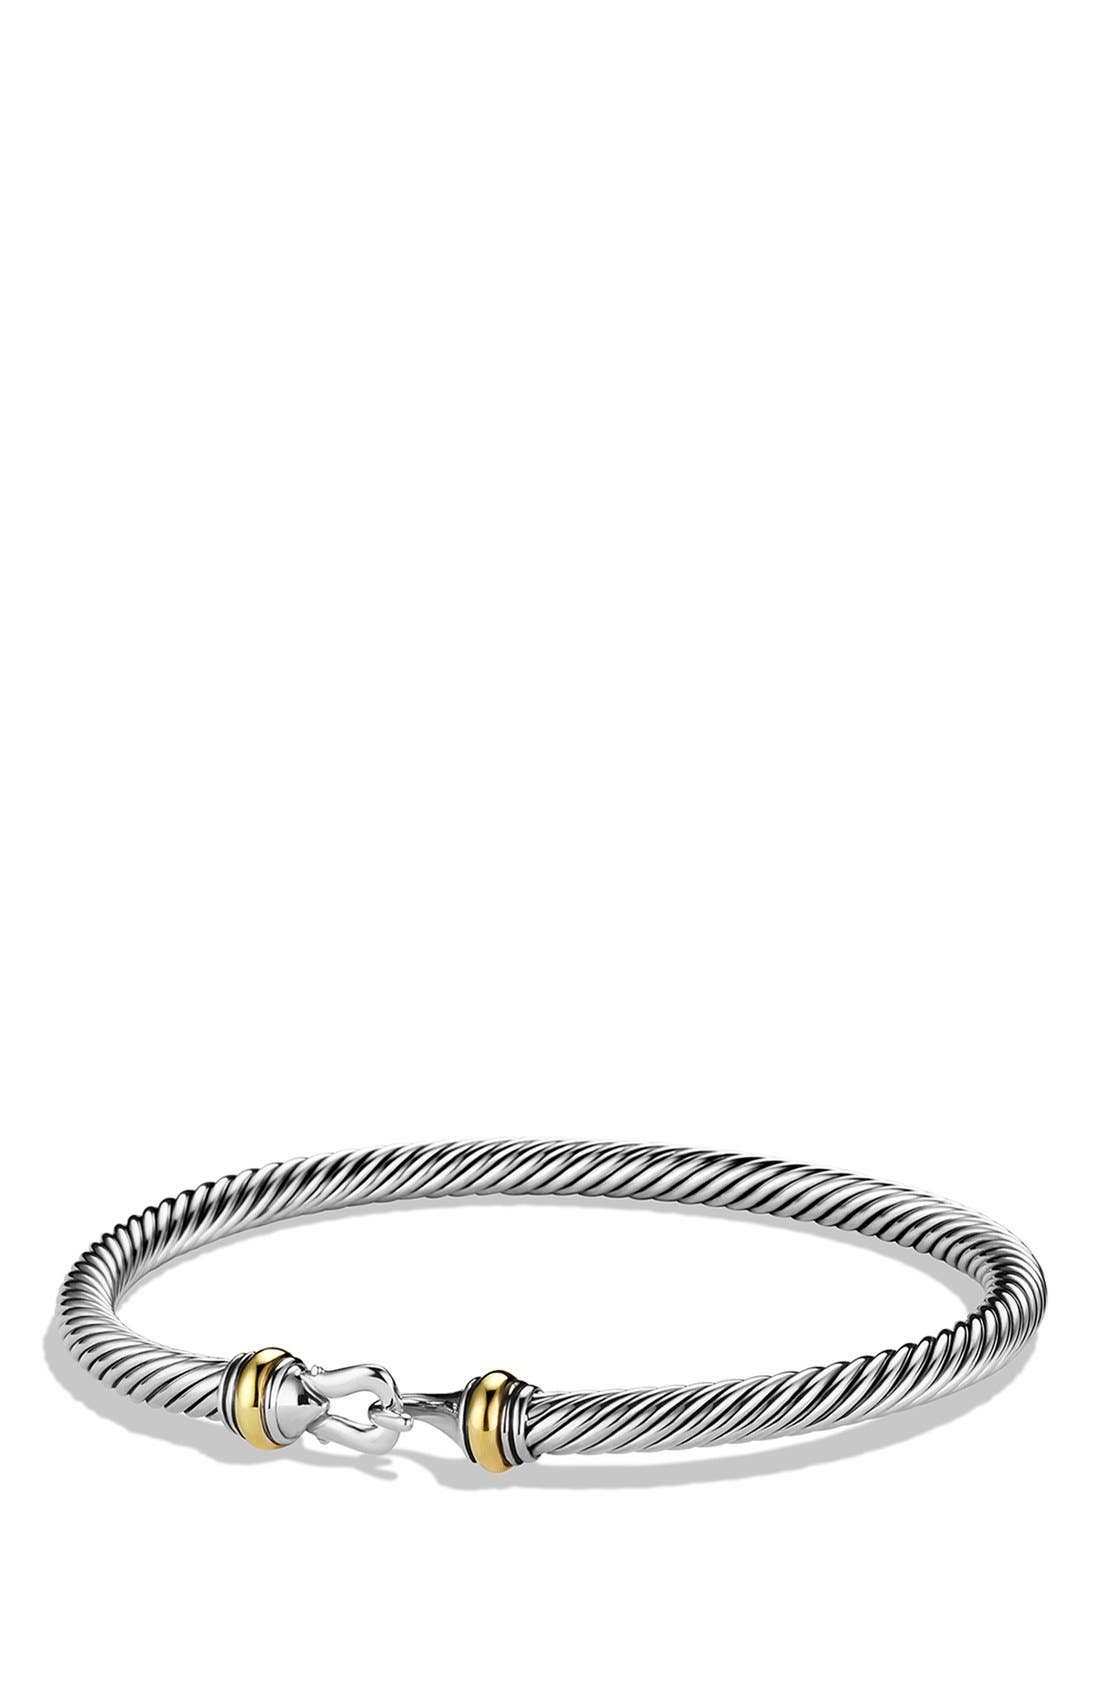 David Yurman 'Buckle Cable' Bracelet with Gold